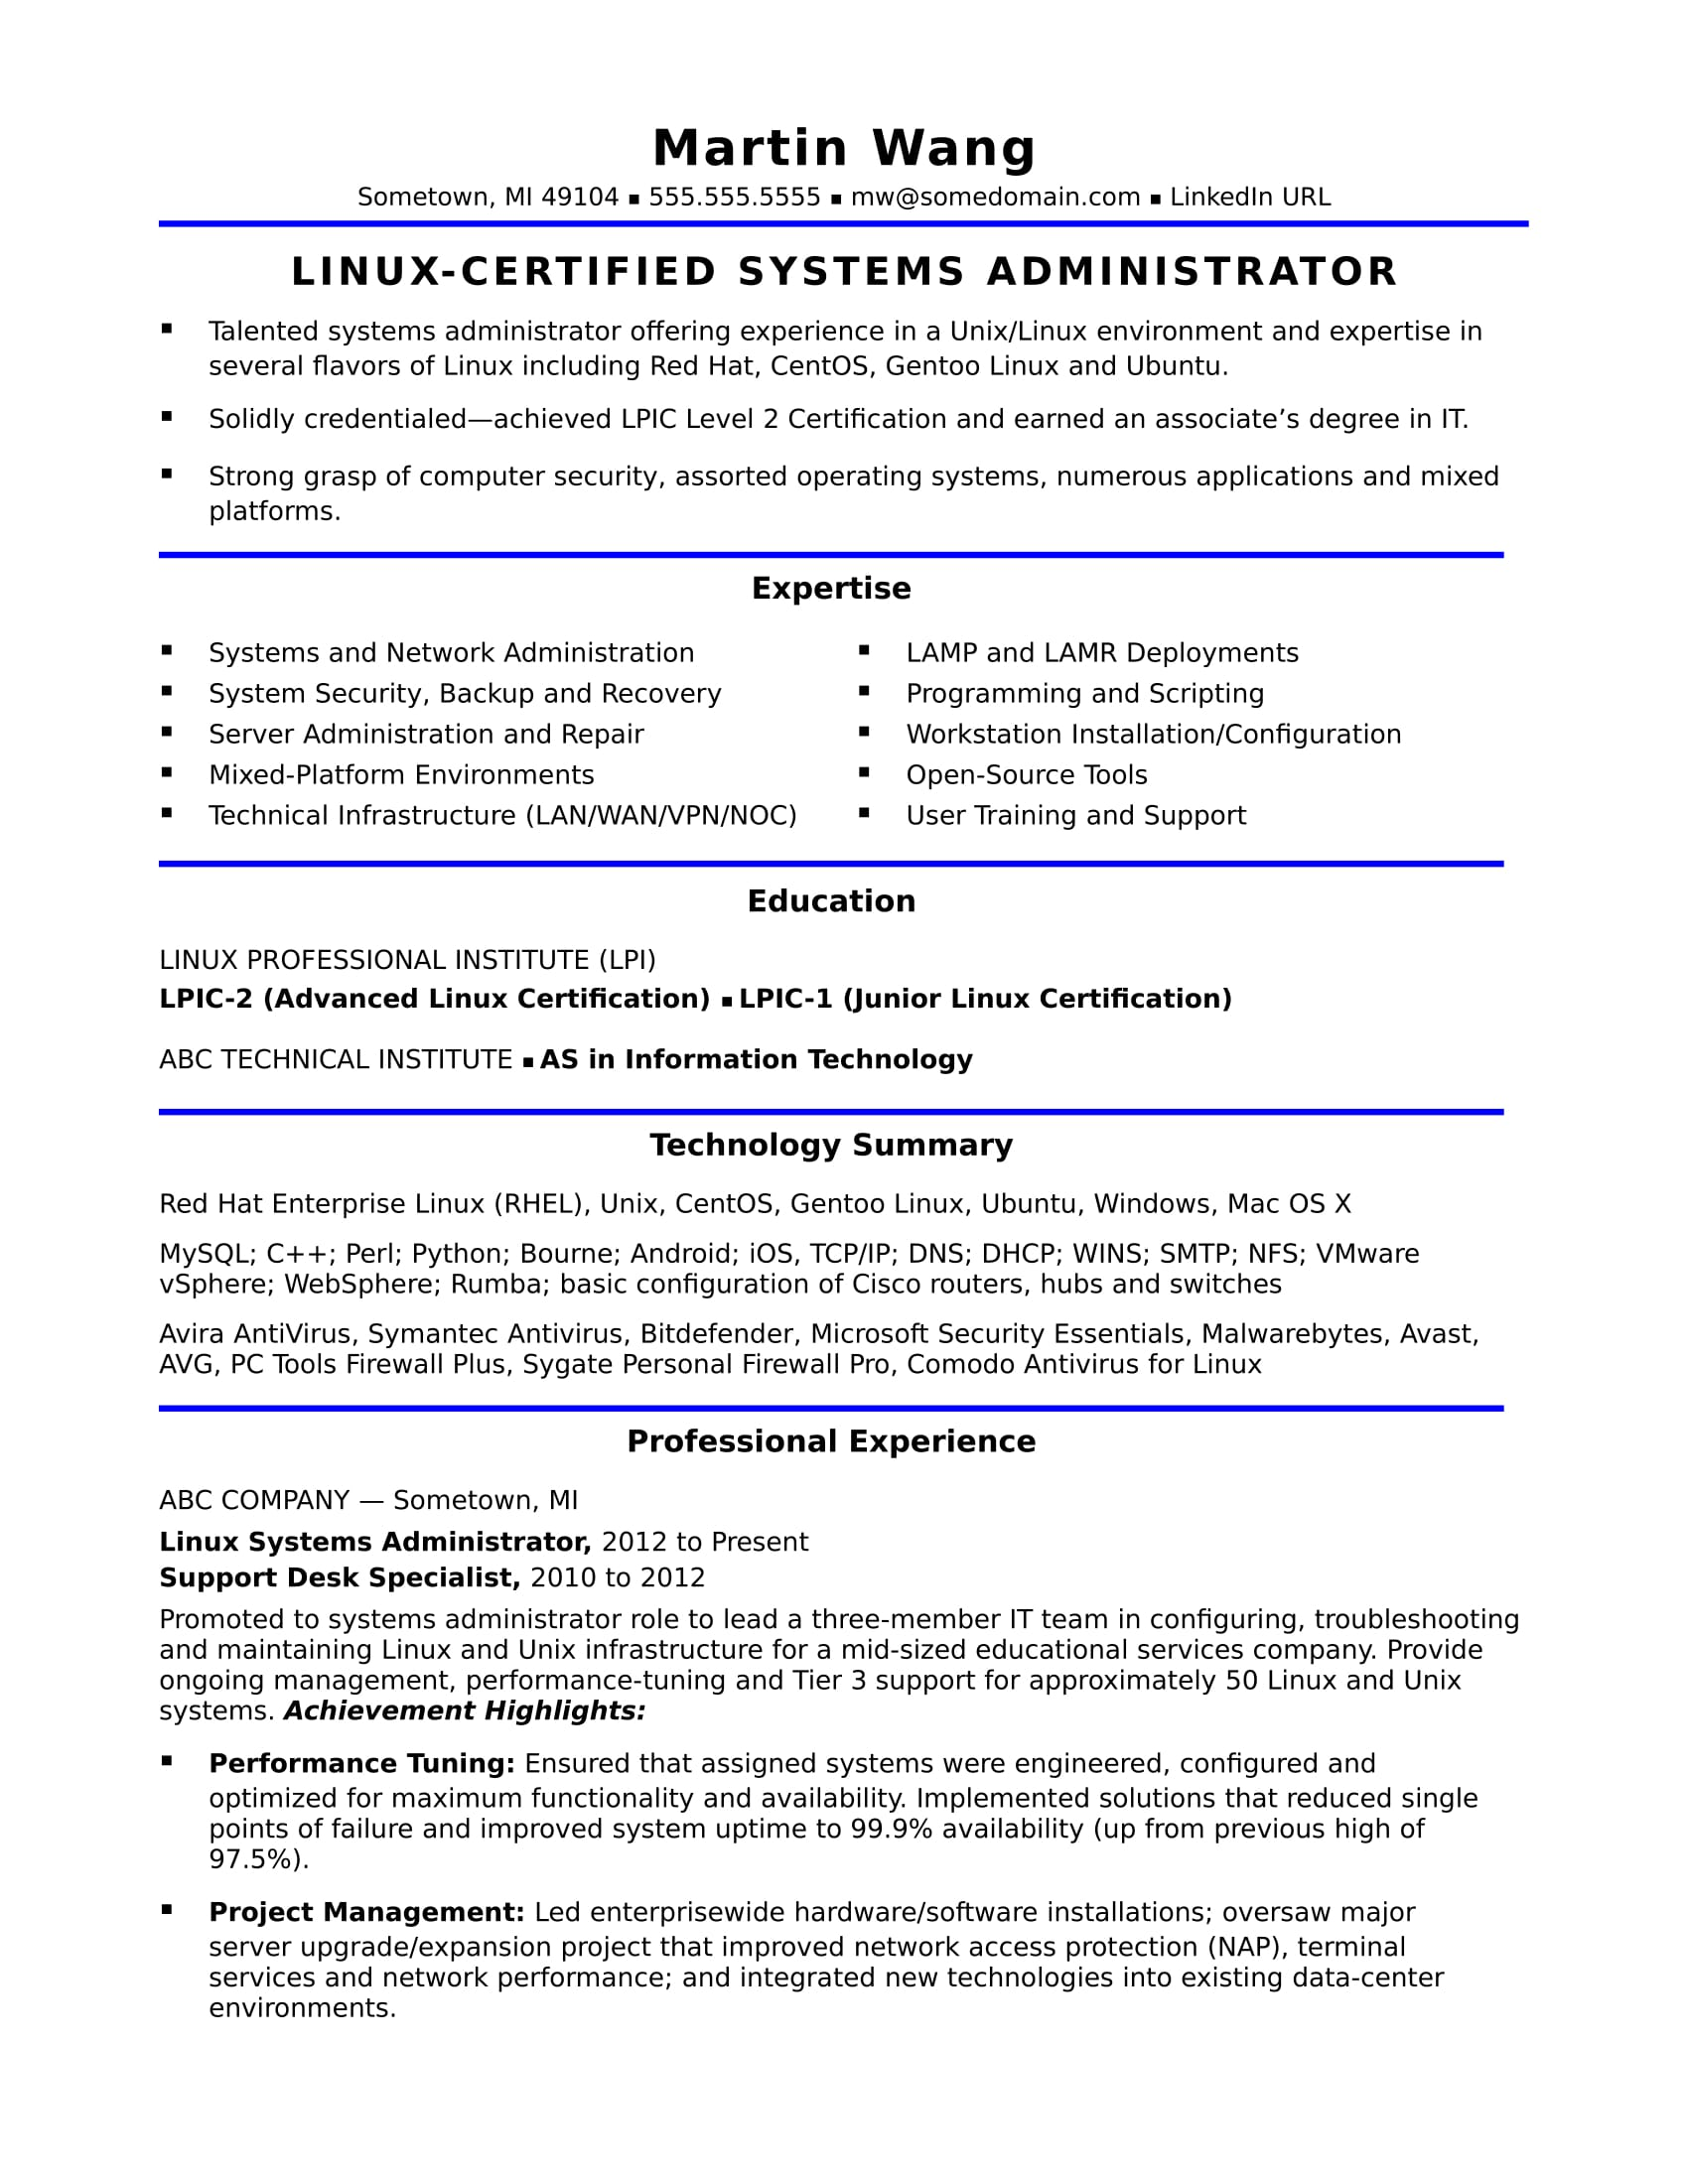 sample resume for midlevel systems administrator monster linux free layout creating good Resume Linux Administrator Resume